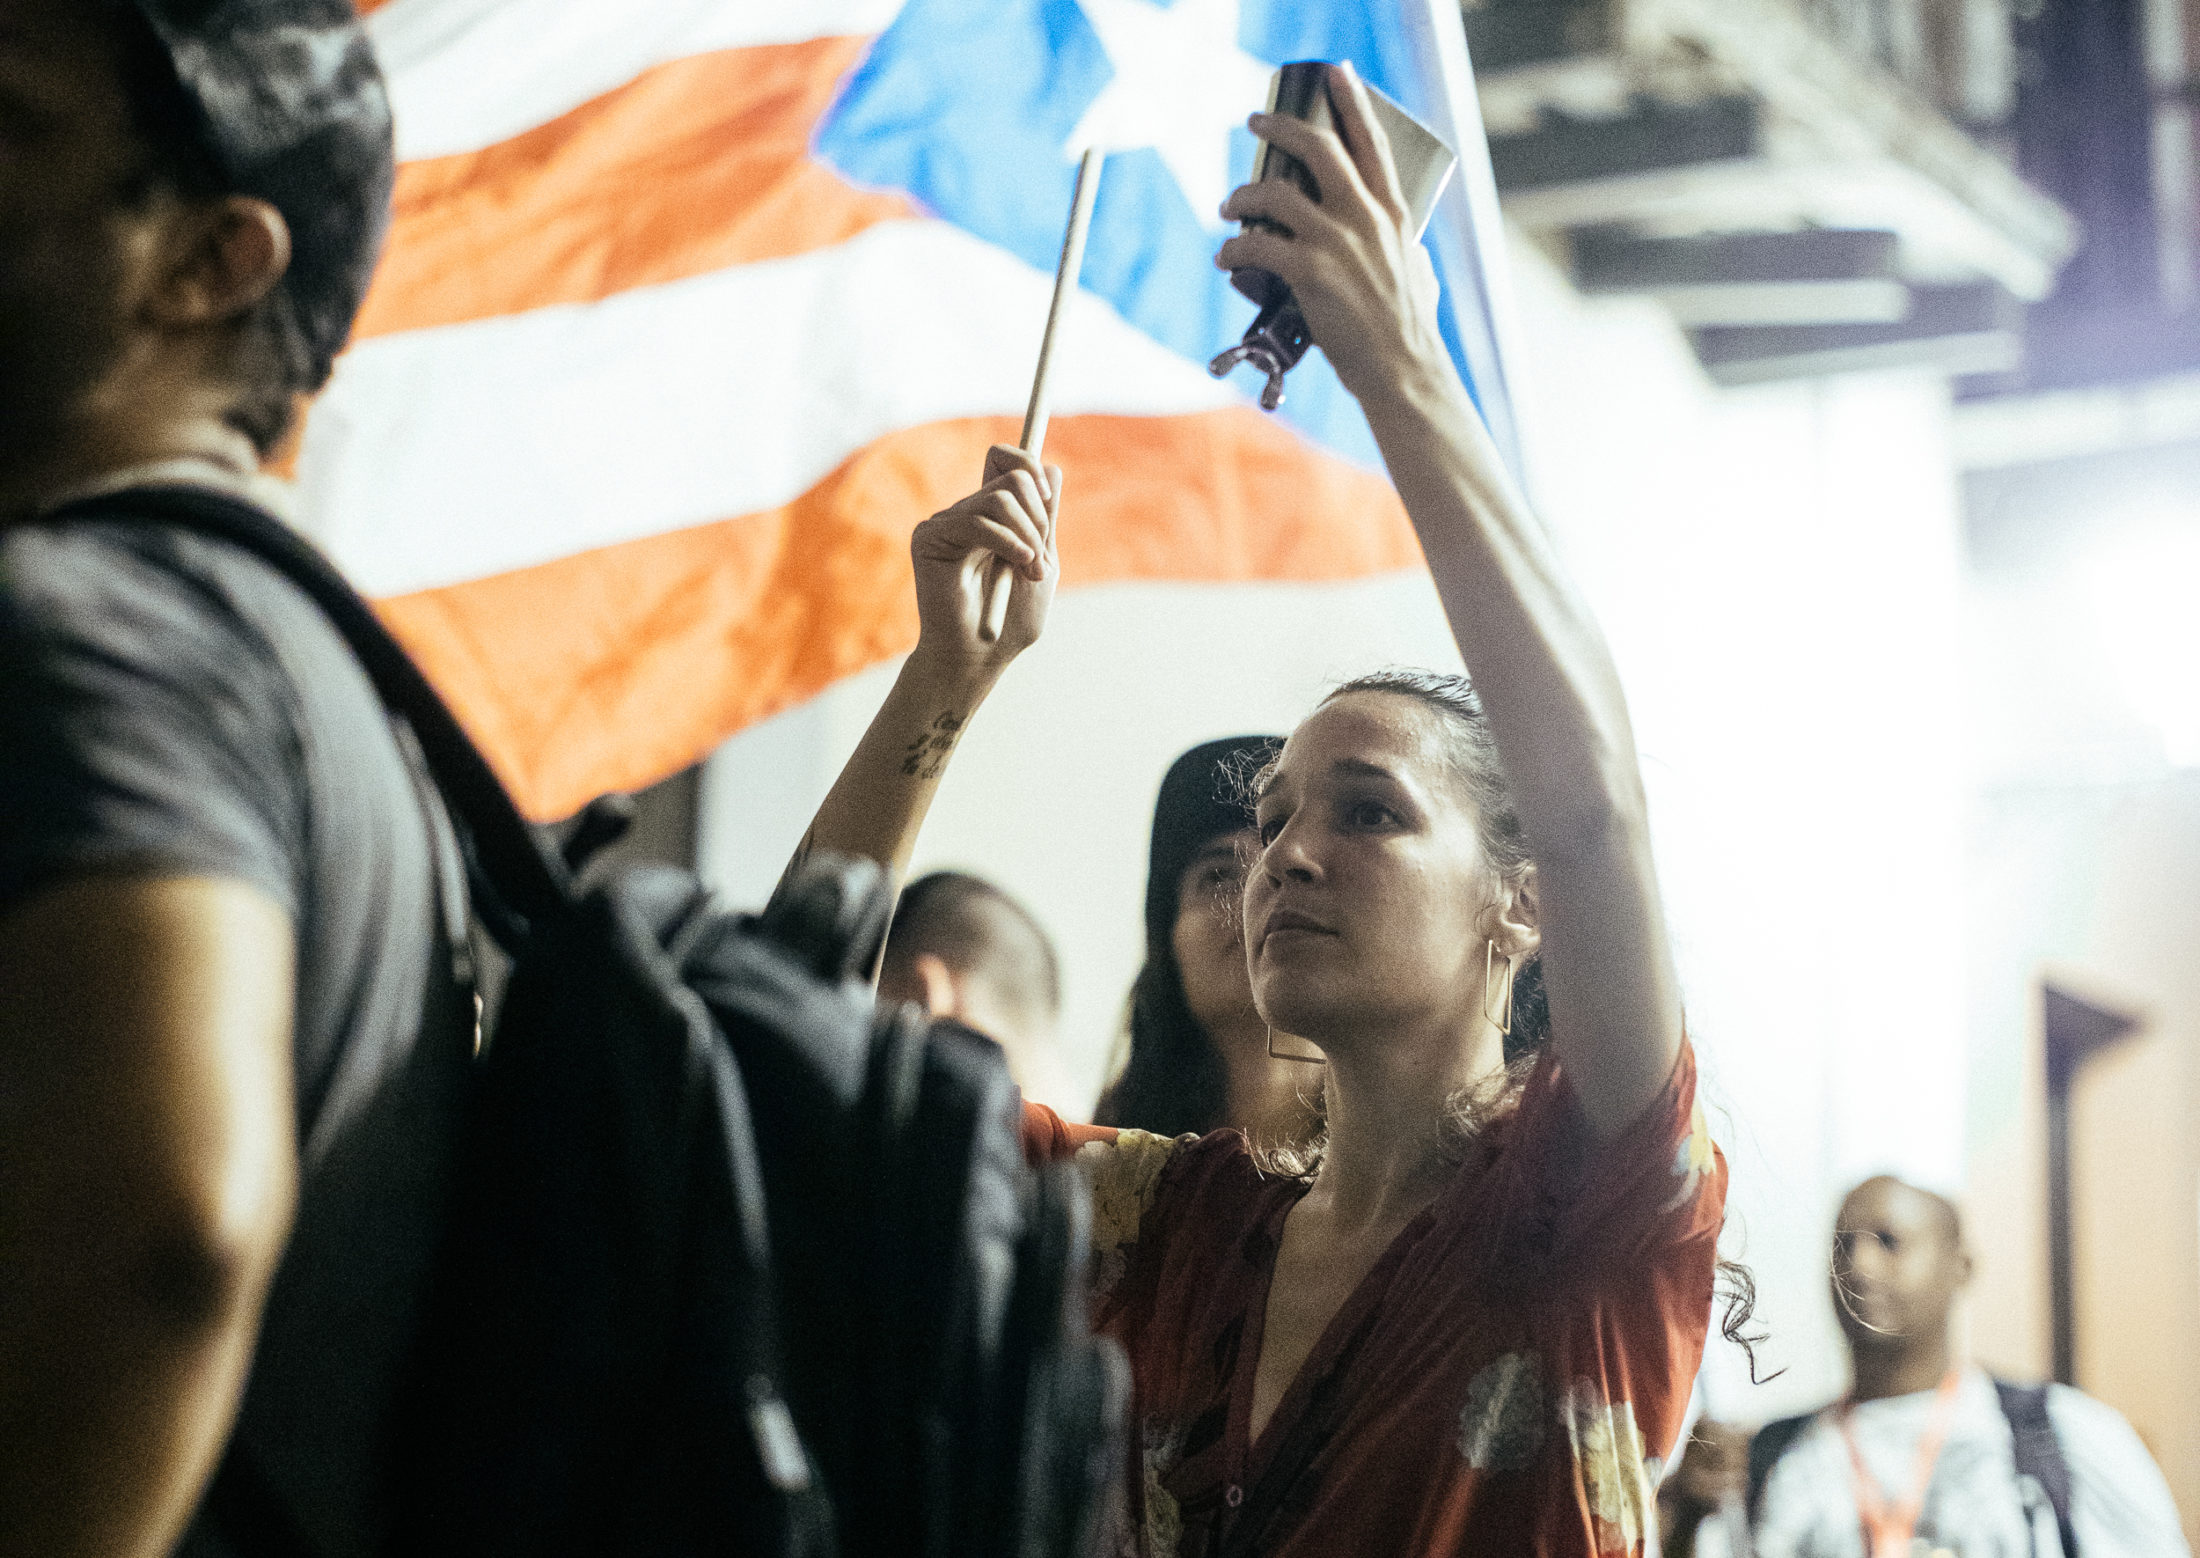 Singer iLe among the protest crowds in San Juan. Photo by Alejandro Pedrosa